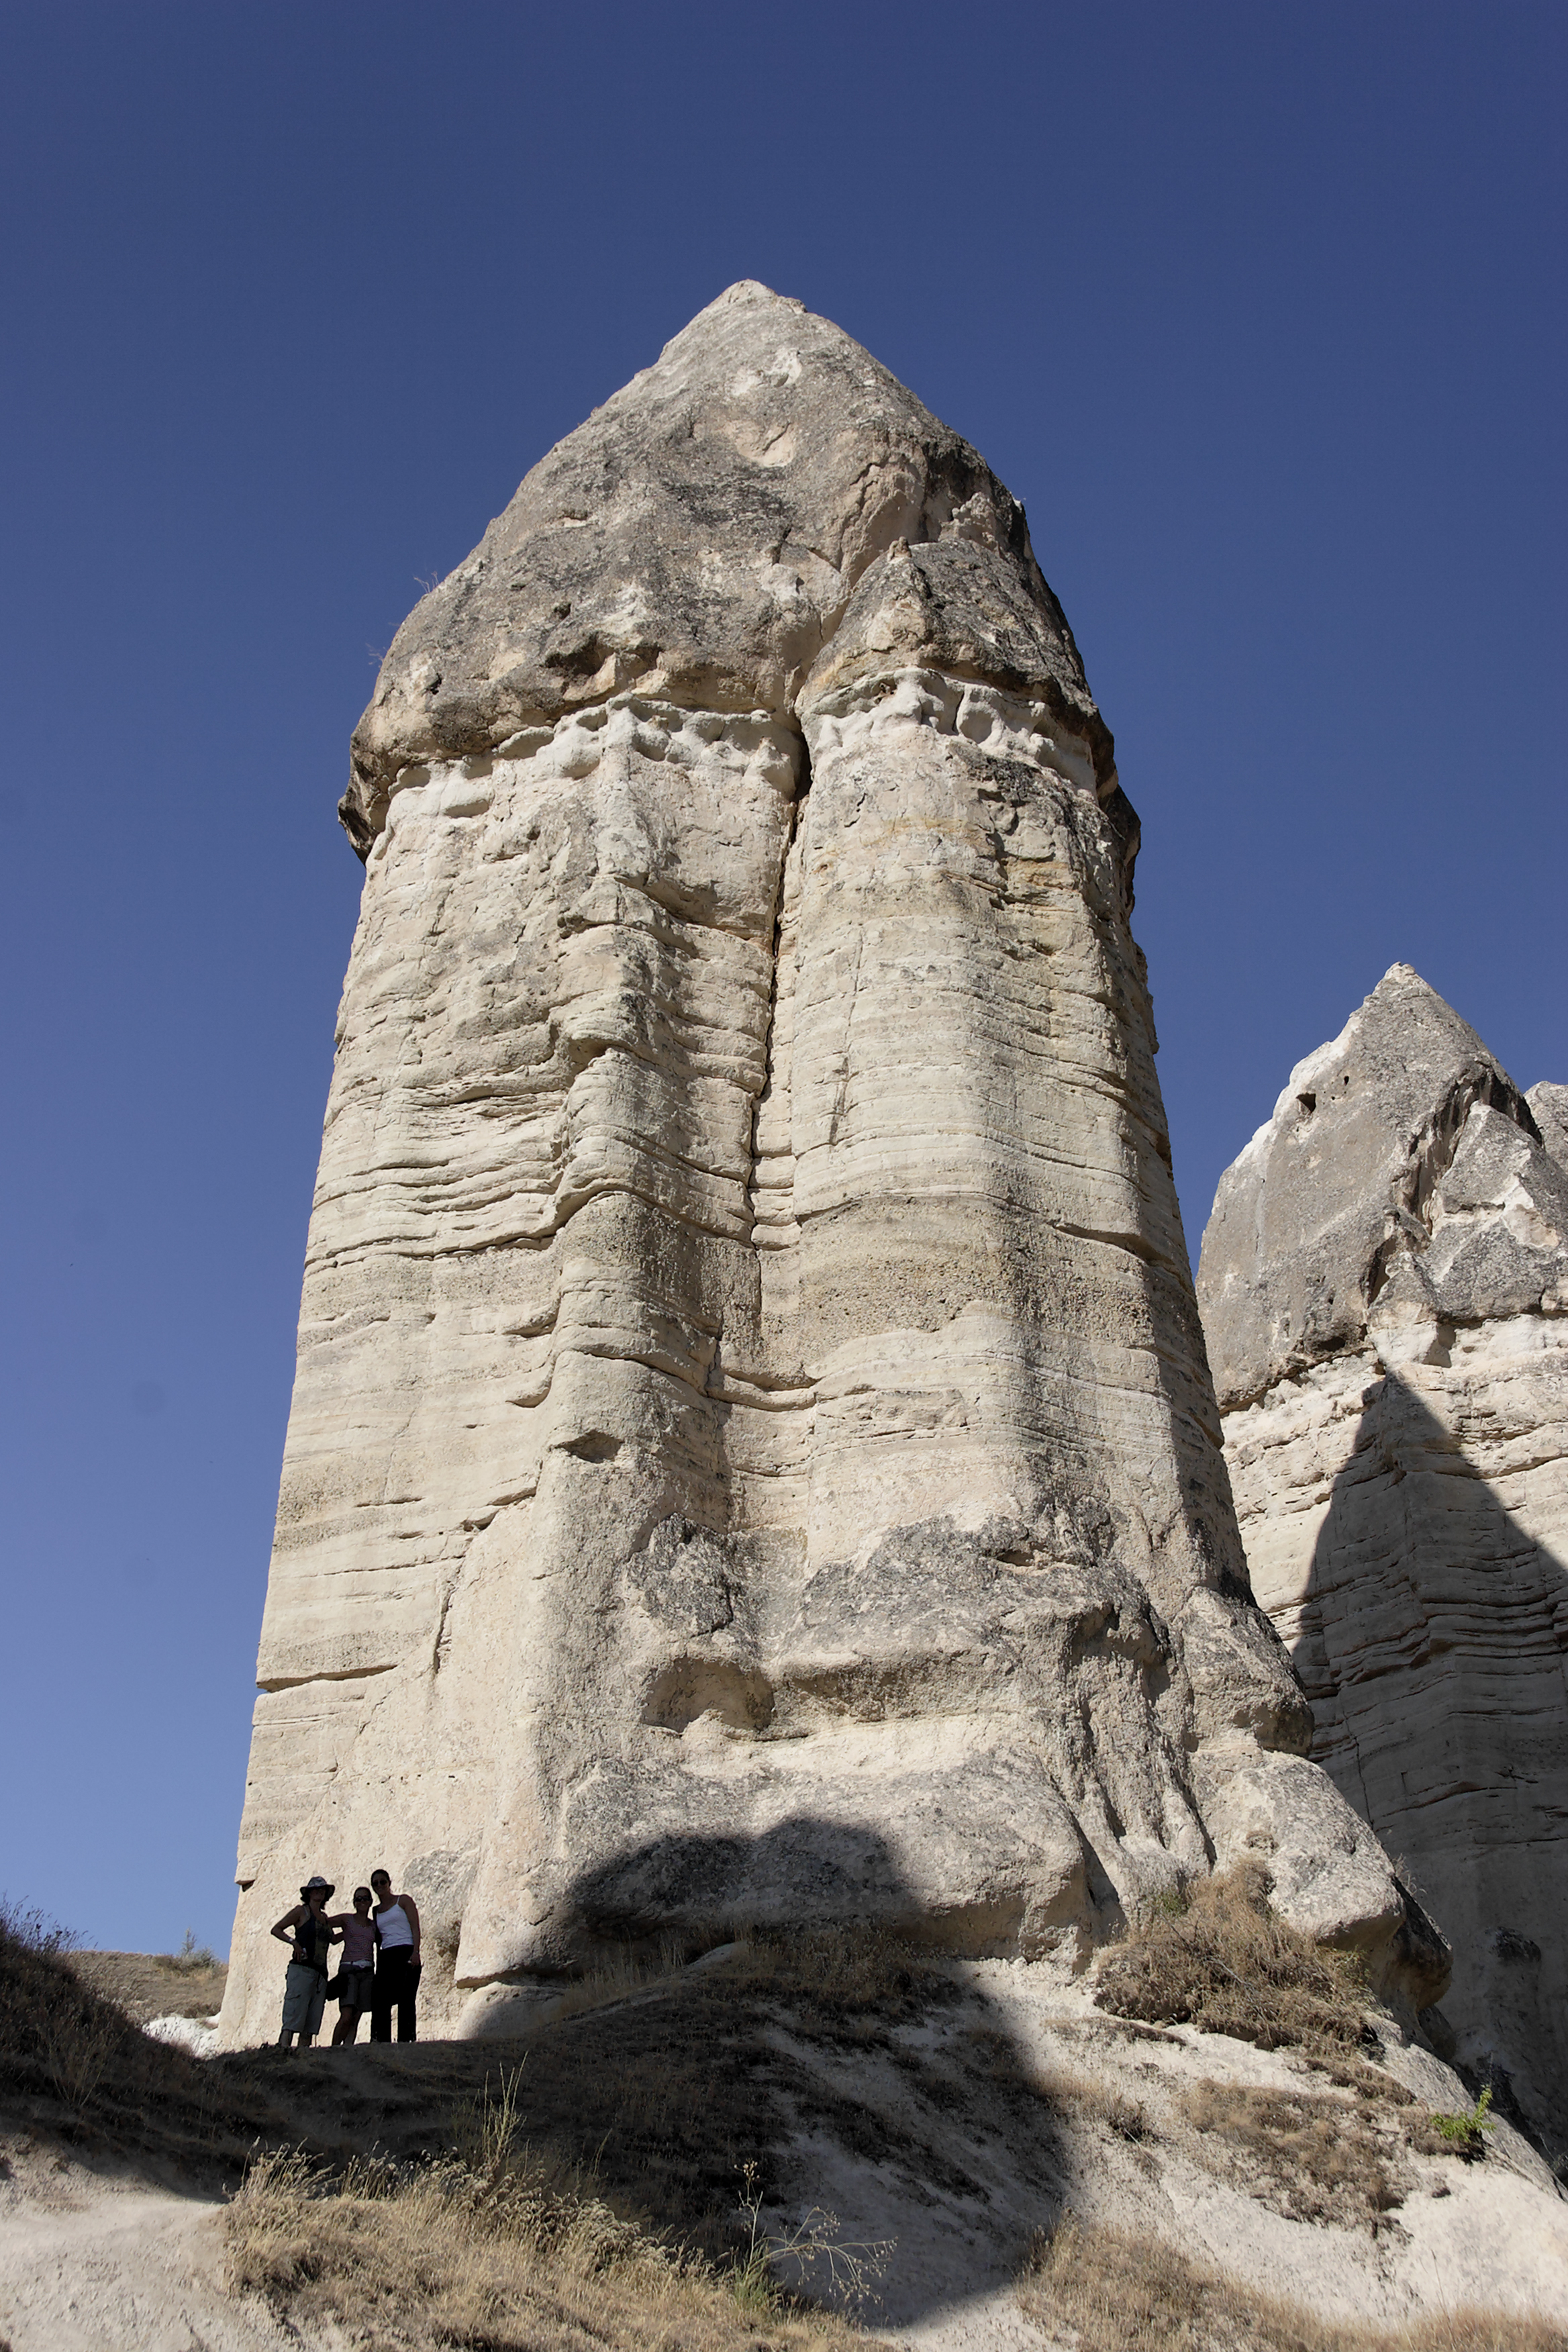 Fairy chimney rock formations, Goreme, Cappadocia Turkey 37.jpg - Goreme, Cappadocia, Turkey